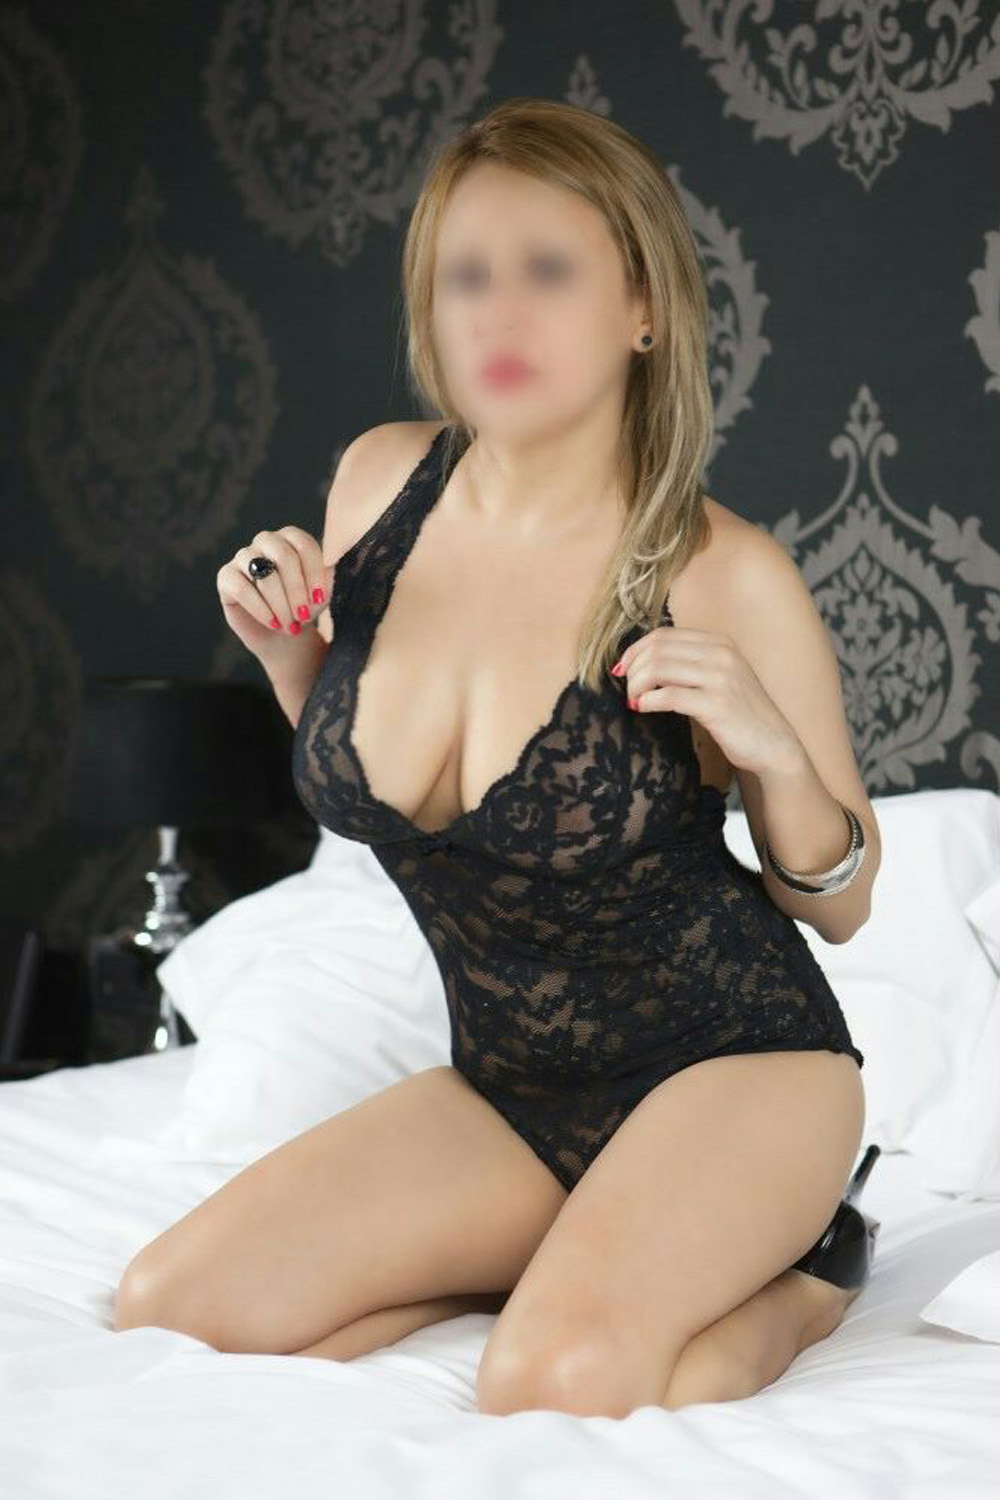 escort independiente whatsapp mujeres escort en santiago